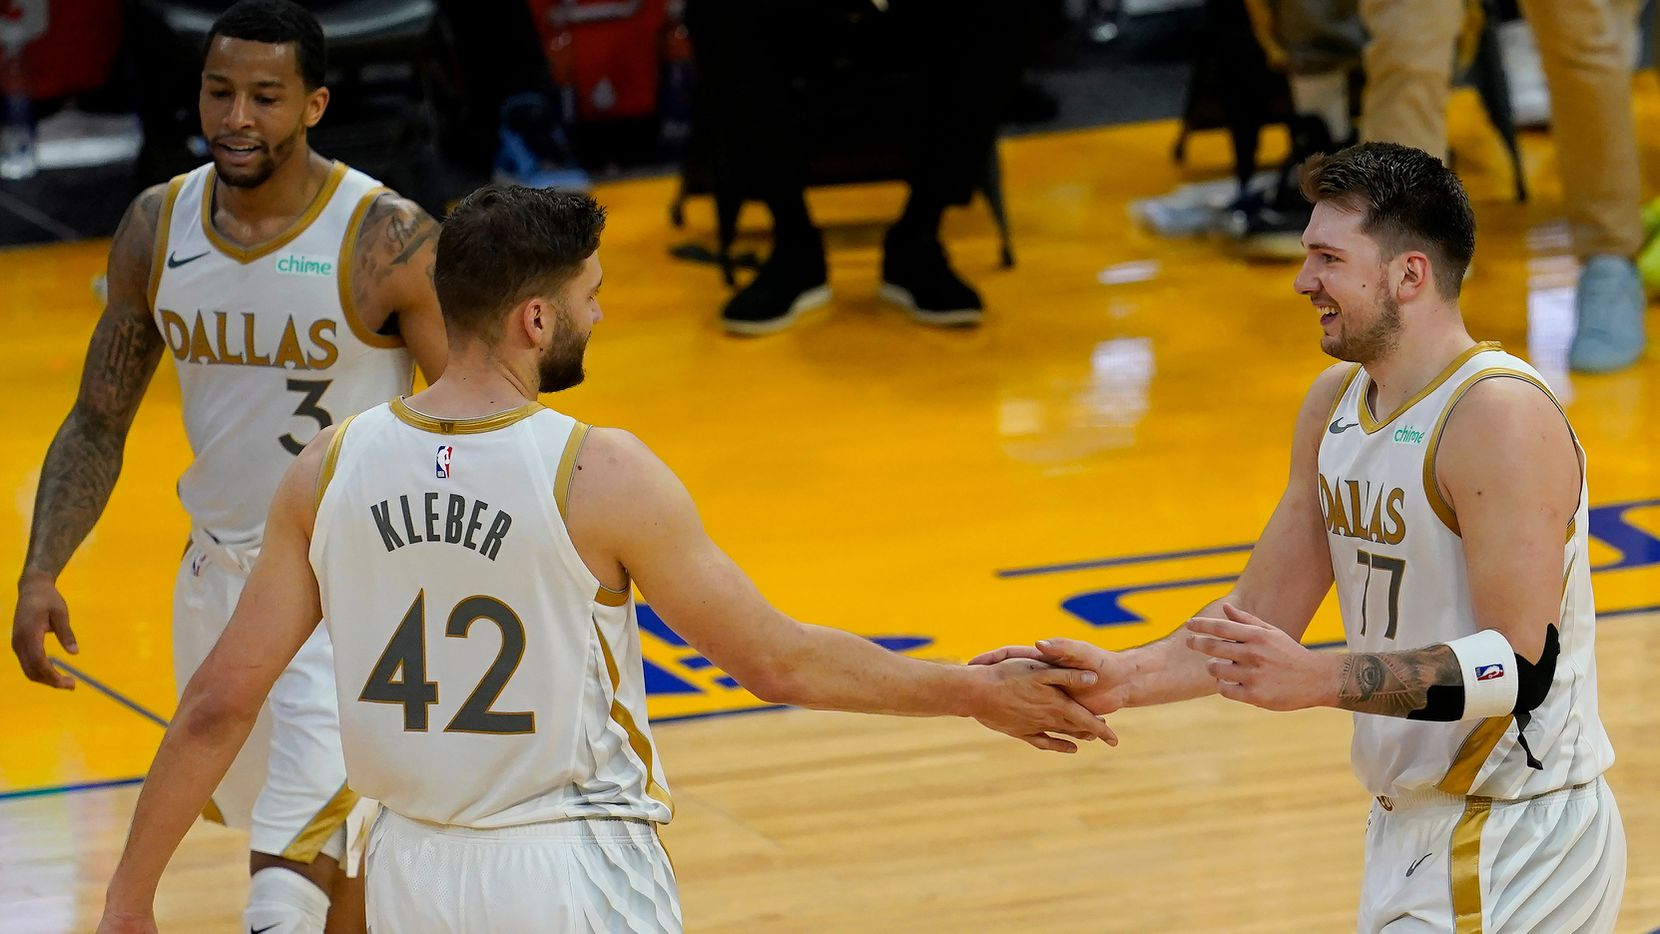 Dallas Mavericks guard Luka Doncic, right, celebrates with Maxi Kleber (42) and Trey Burke (3) during the first half of an NBA basketball game against the Golden State Warriors in San Francisco, Tuesday, April 27, 2021.